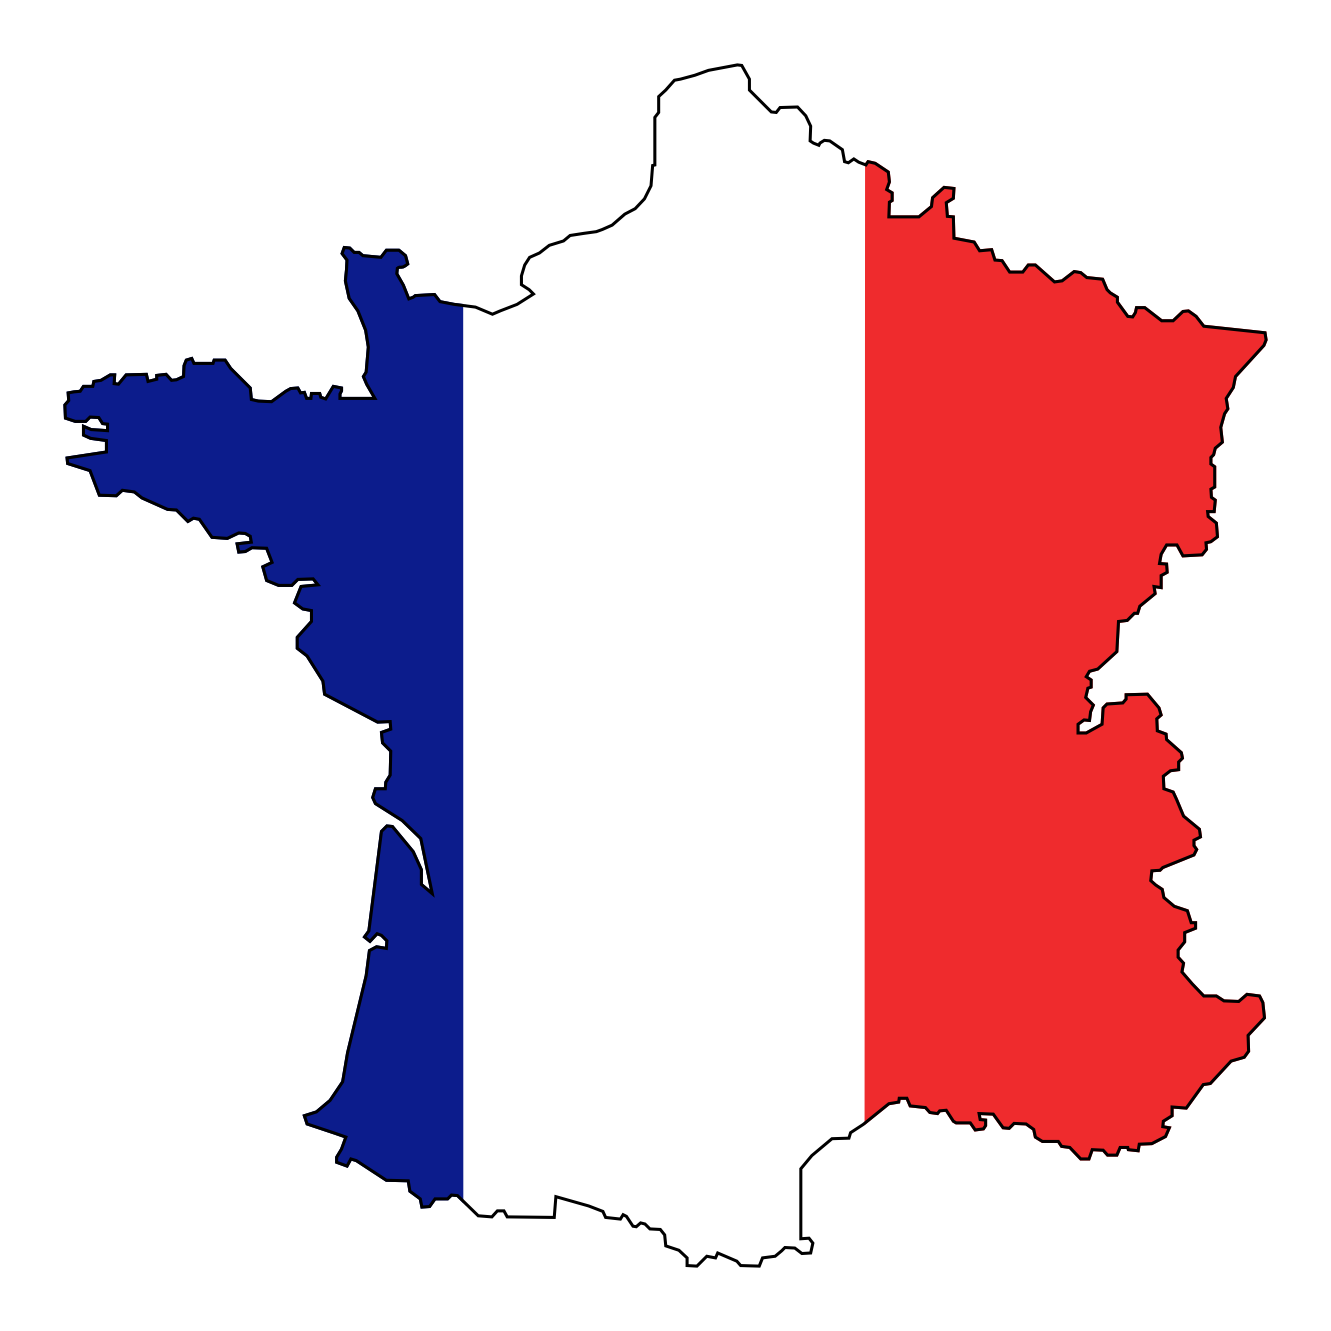 The image french porn